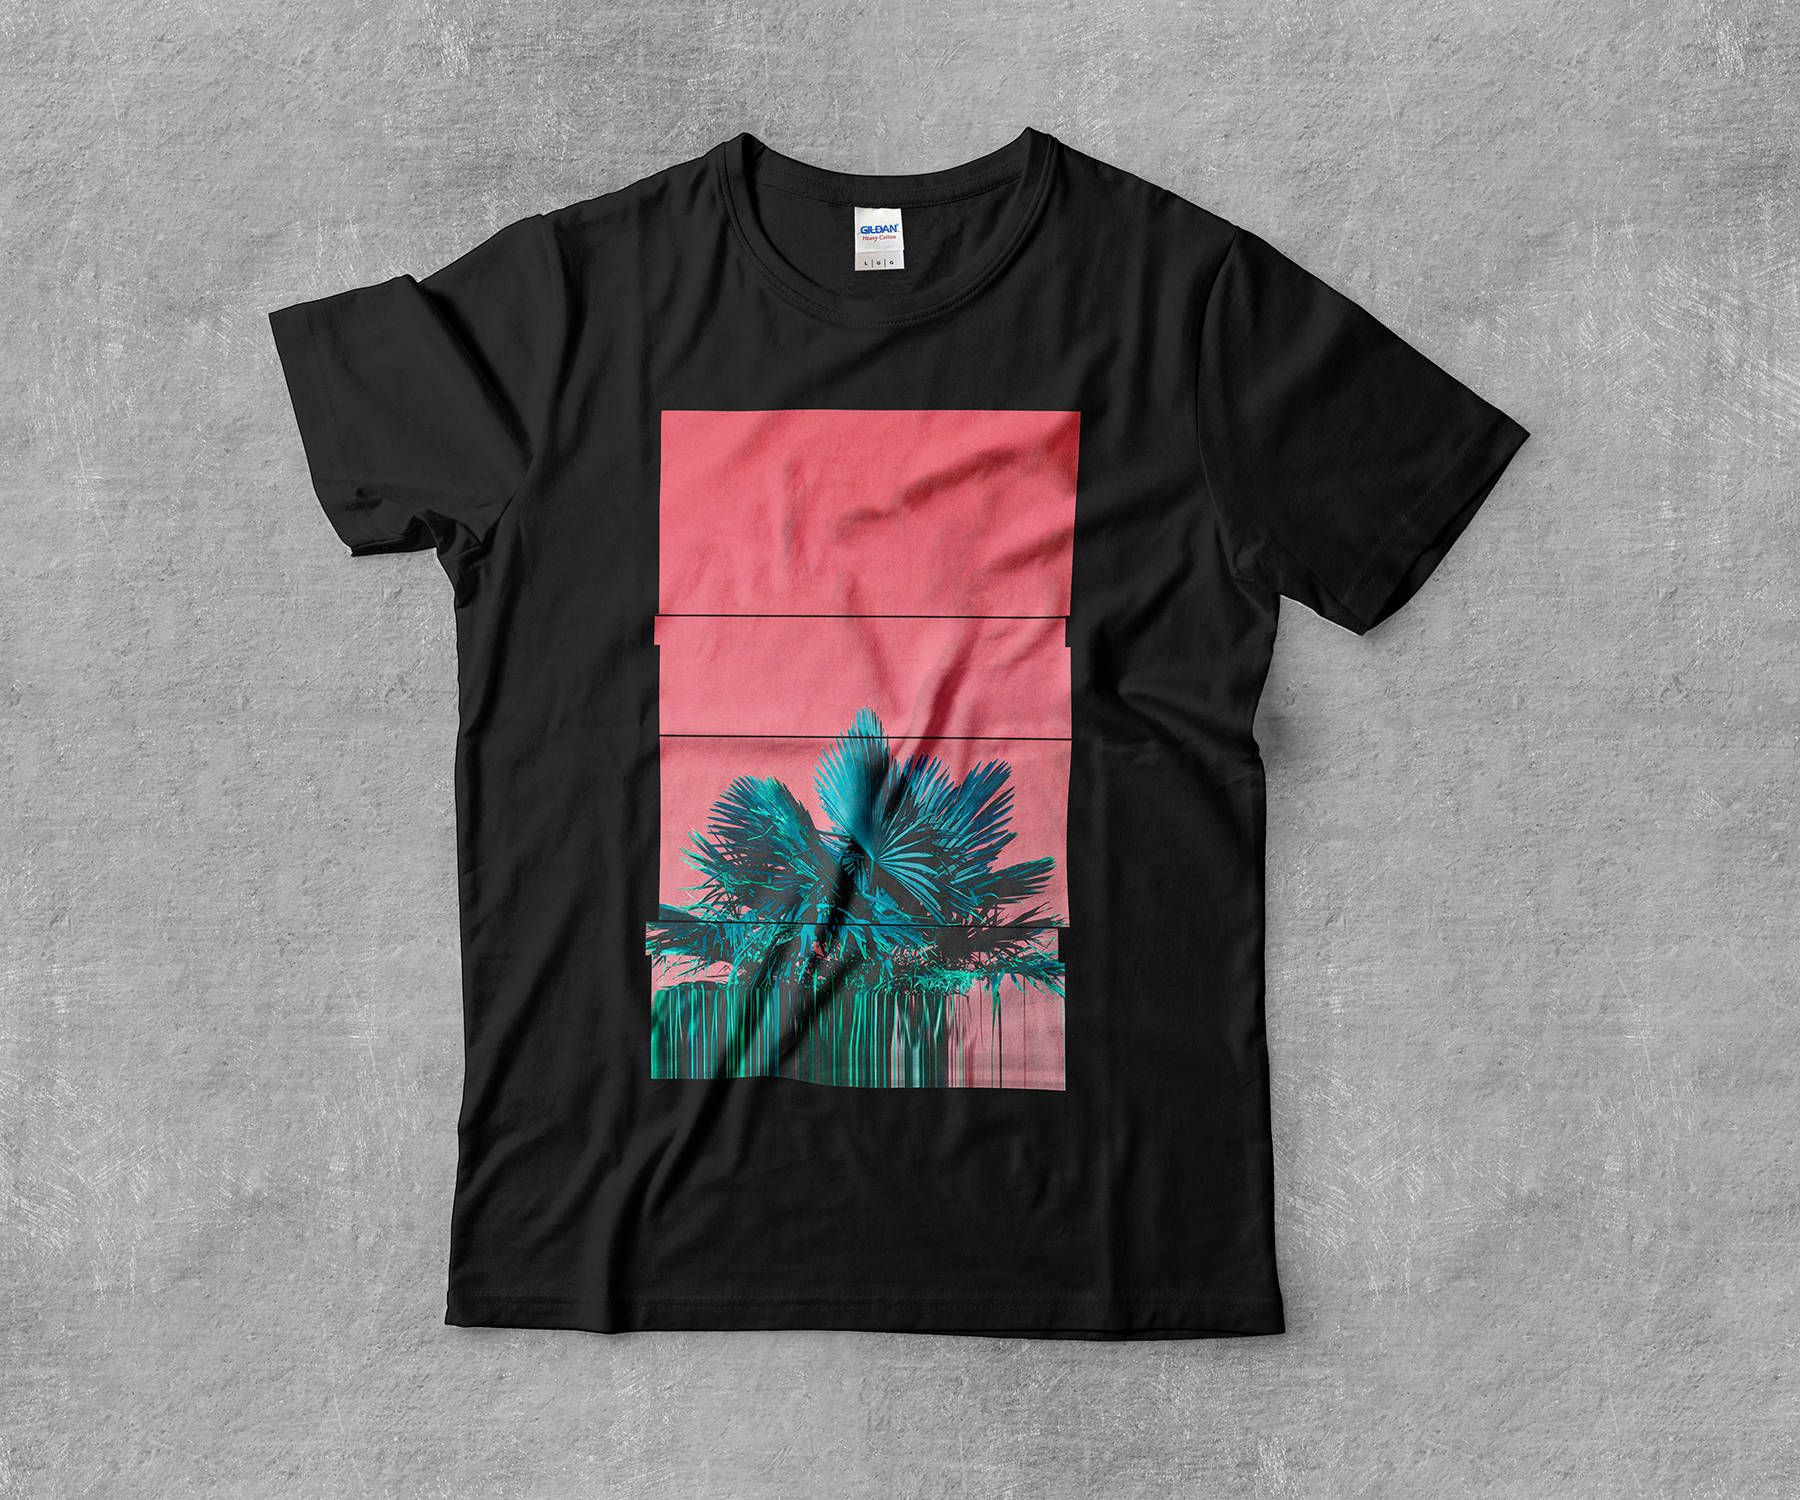 Vaporwave AESTHETIC བརད་ Tropical Palm Glitch Miami Art Skateboarding Internet Tumblr Art Sweatshirt fLNbUZIgvB